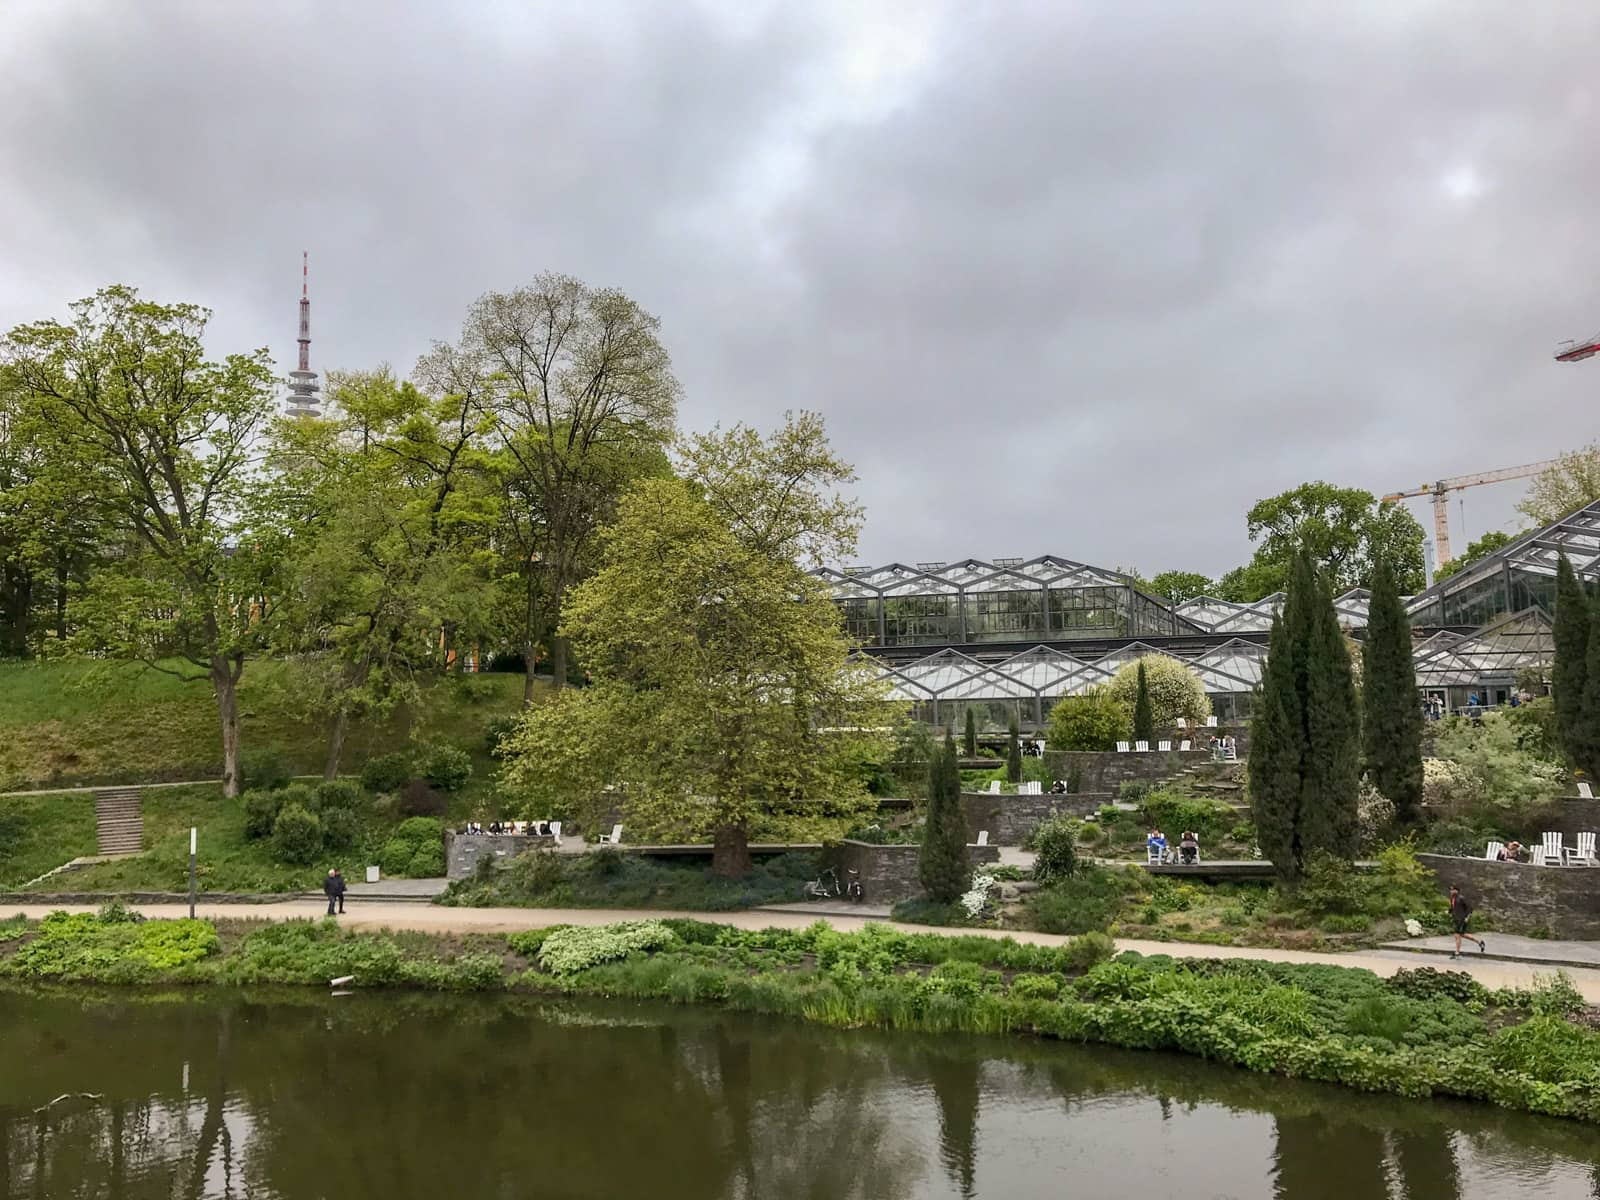 The inside of a park, with a river in the foreground, and greenhouses in the background. There are many trees in the park